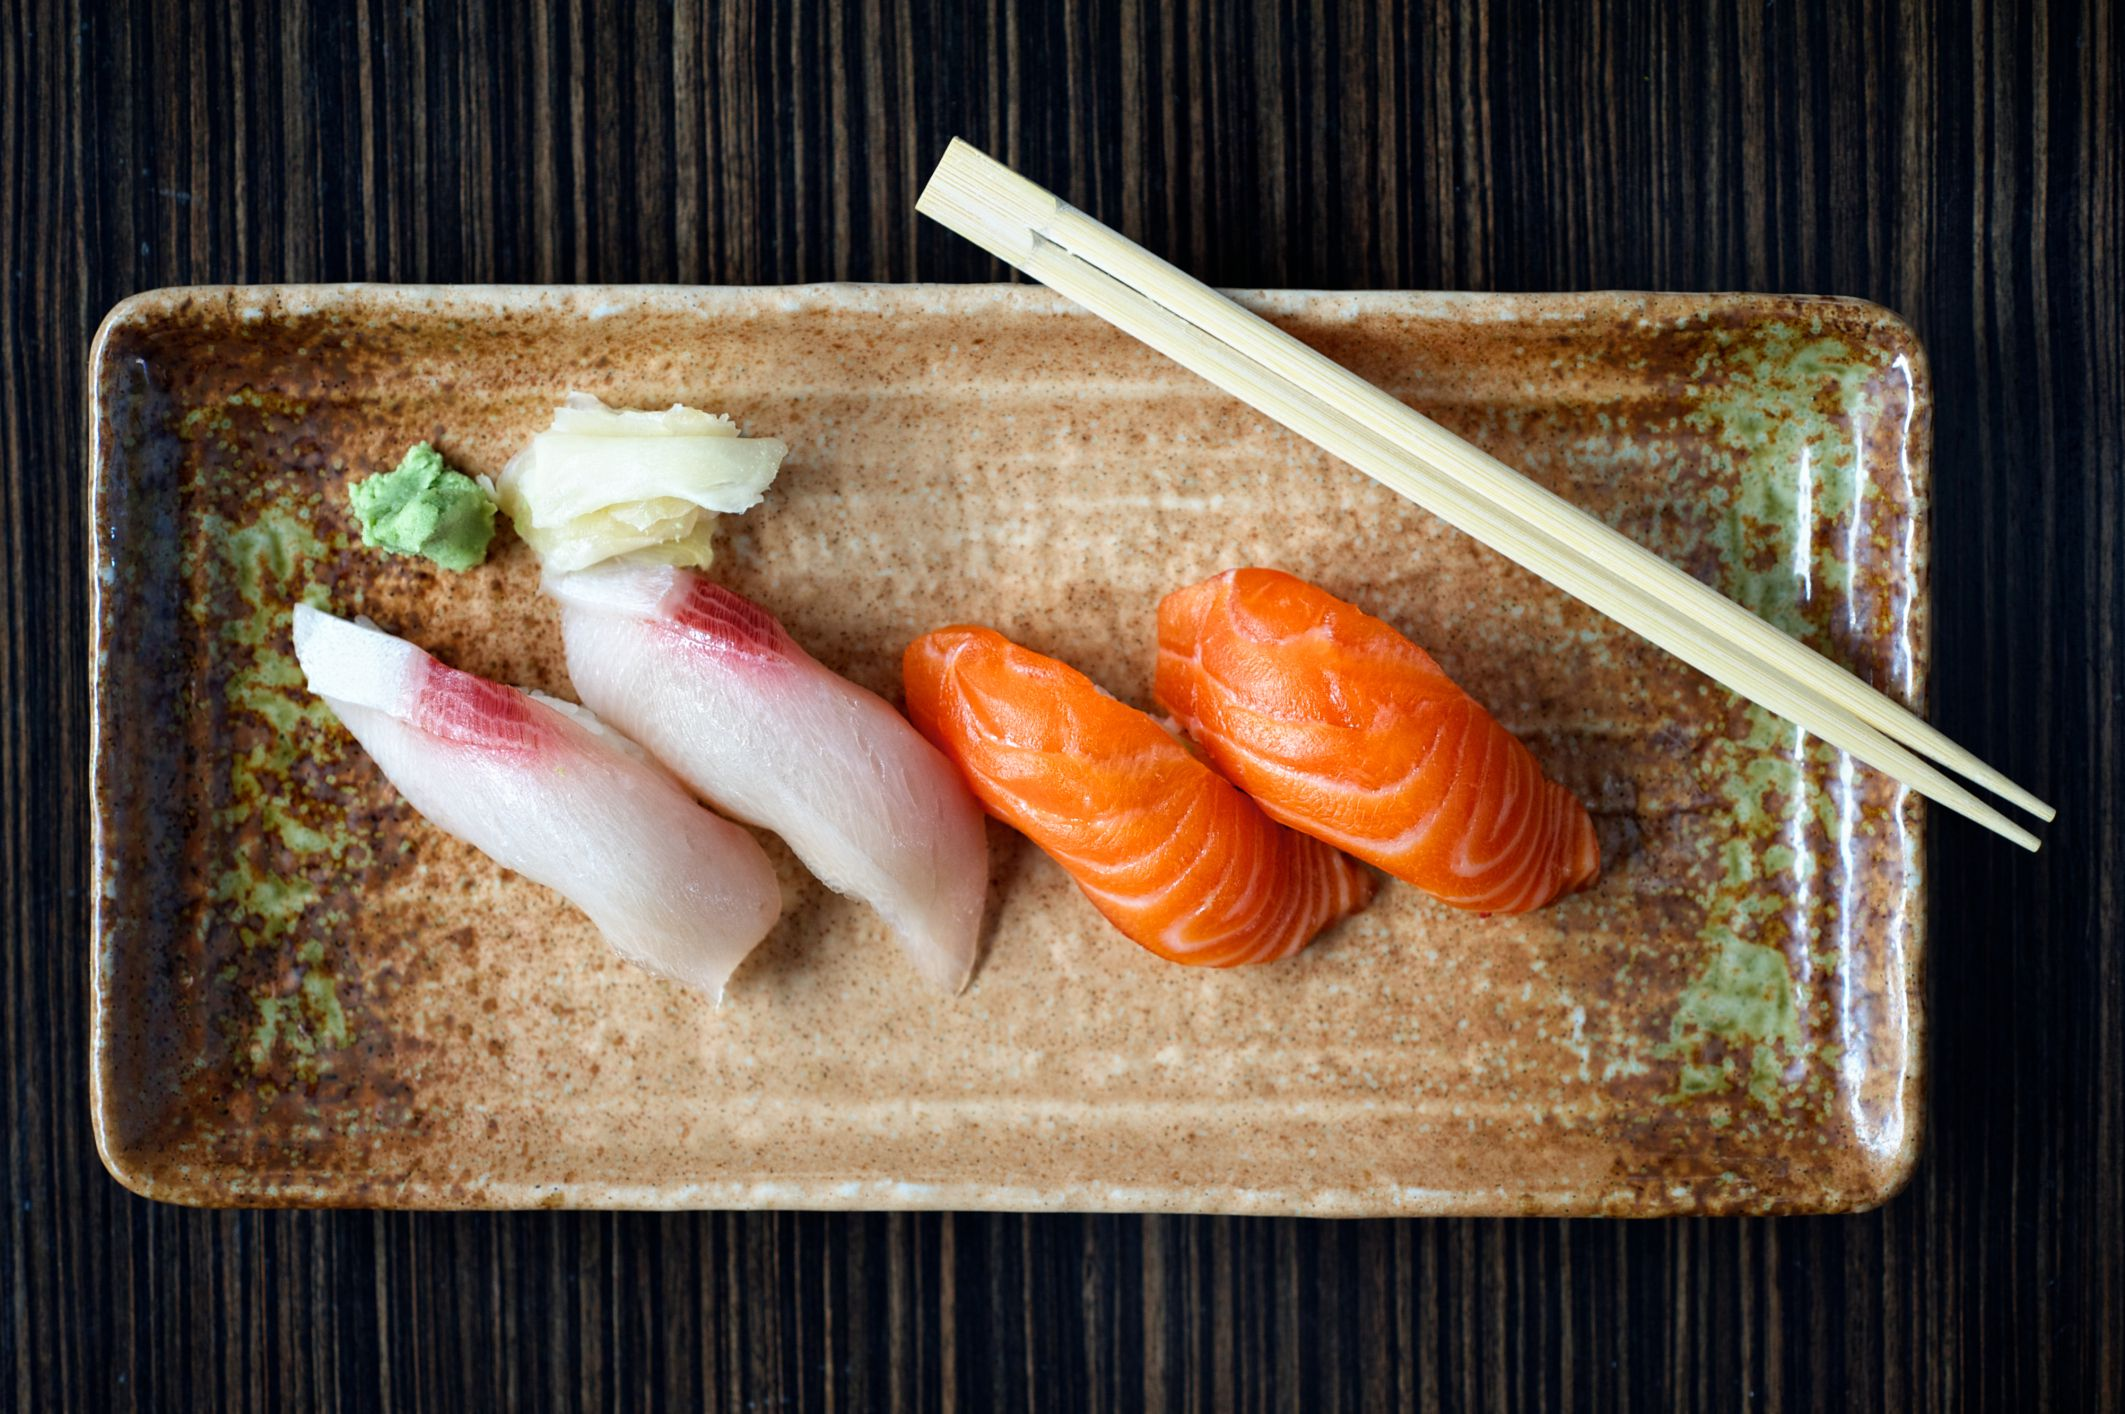 facts about sushi  16 interesting things to know